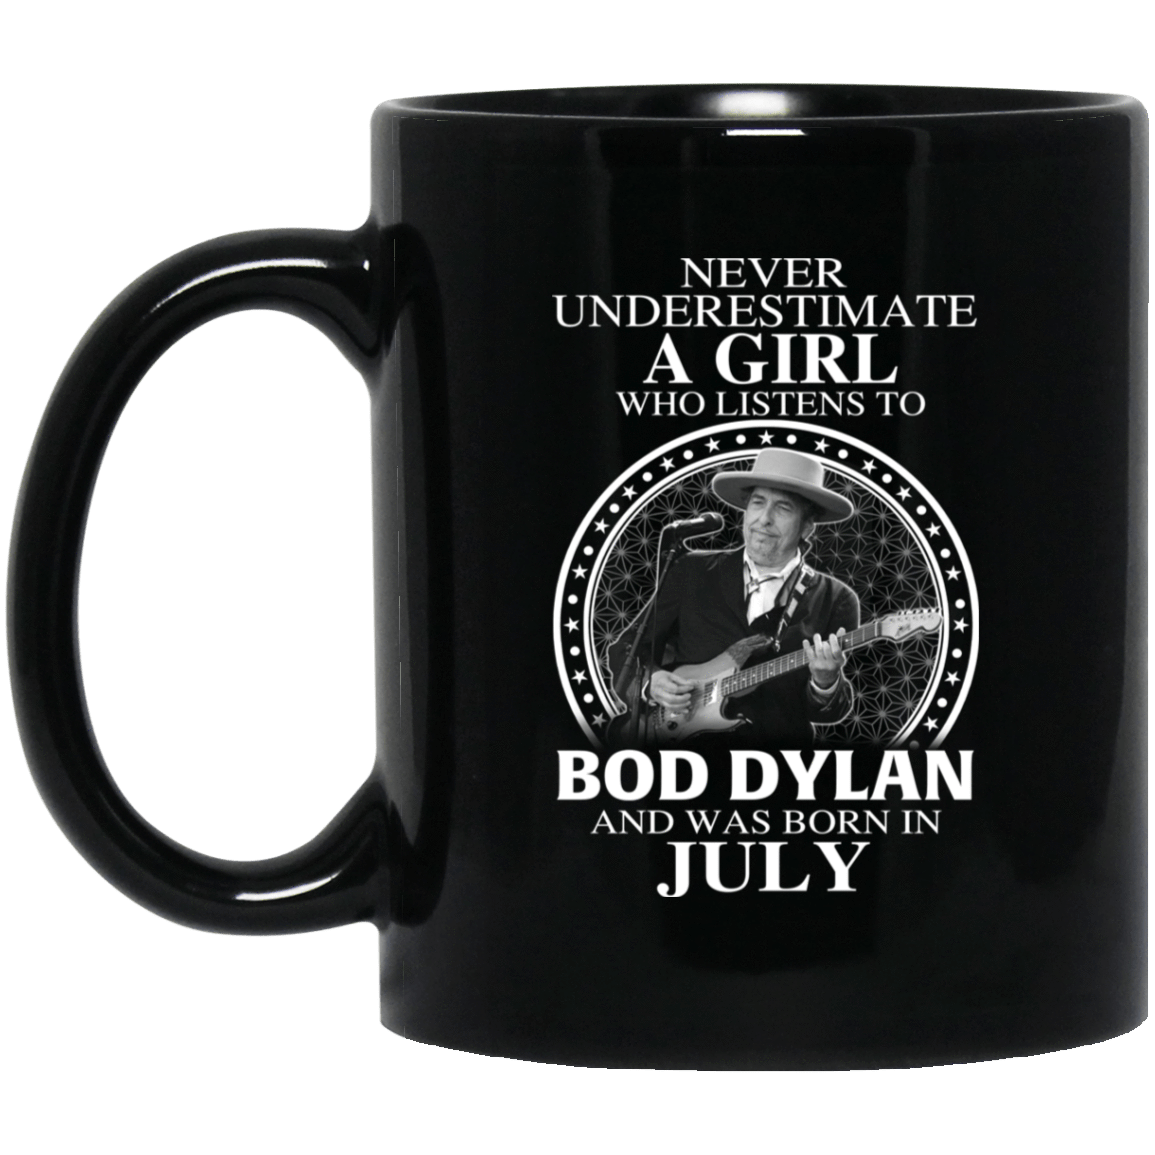 A Girl Who Listens To Bob Dylan And Was Born In July Mug 1065-10181-76154836-49307 - Tee Ript